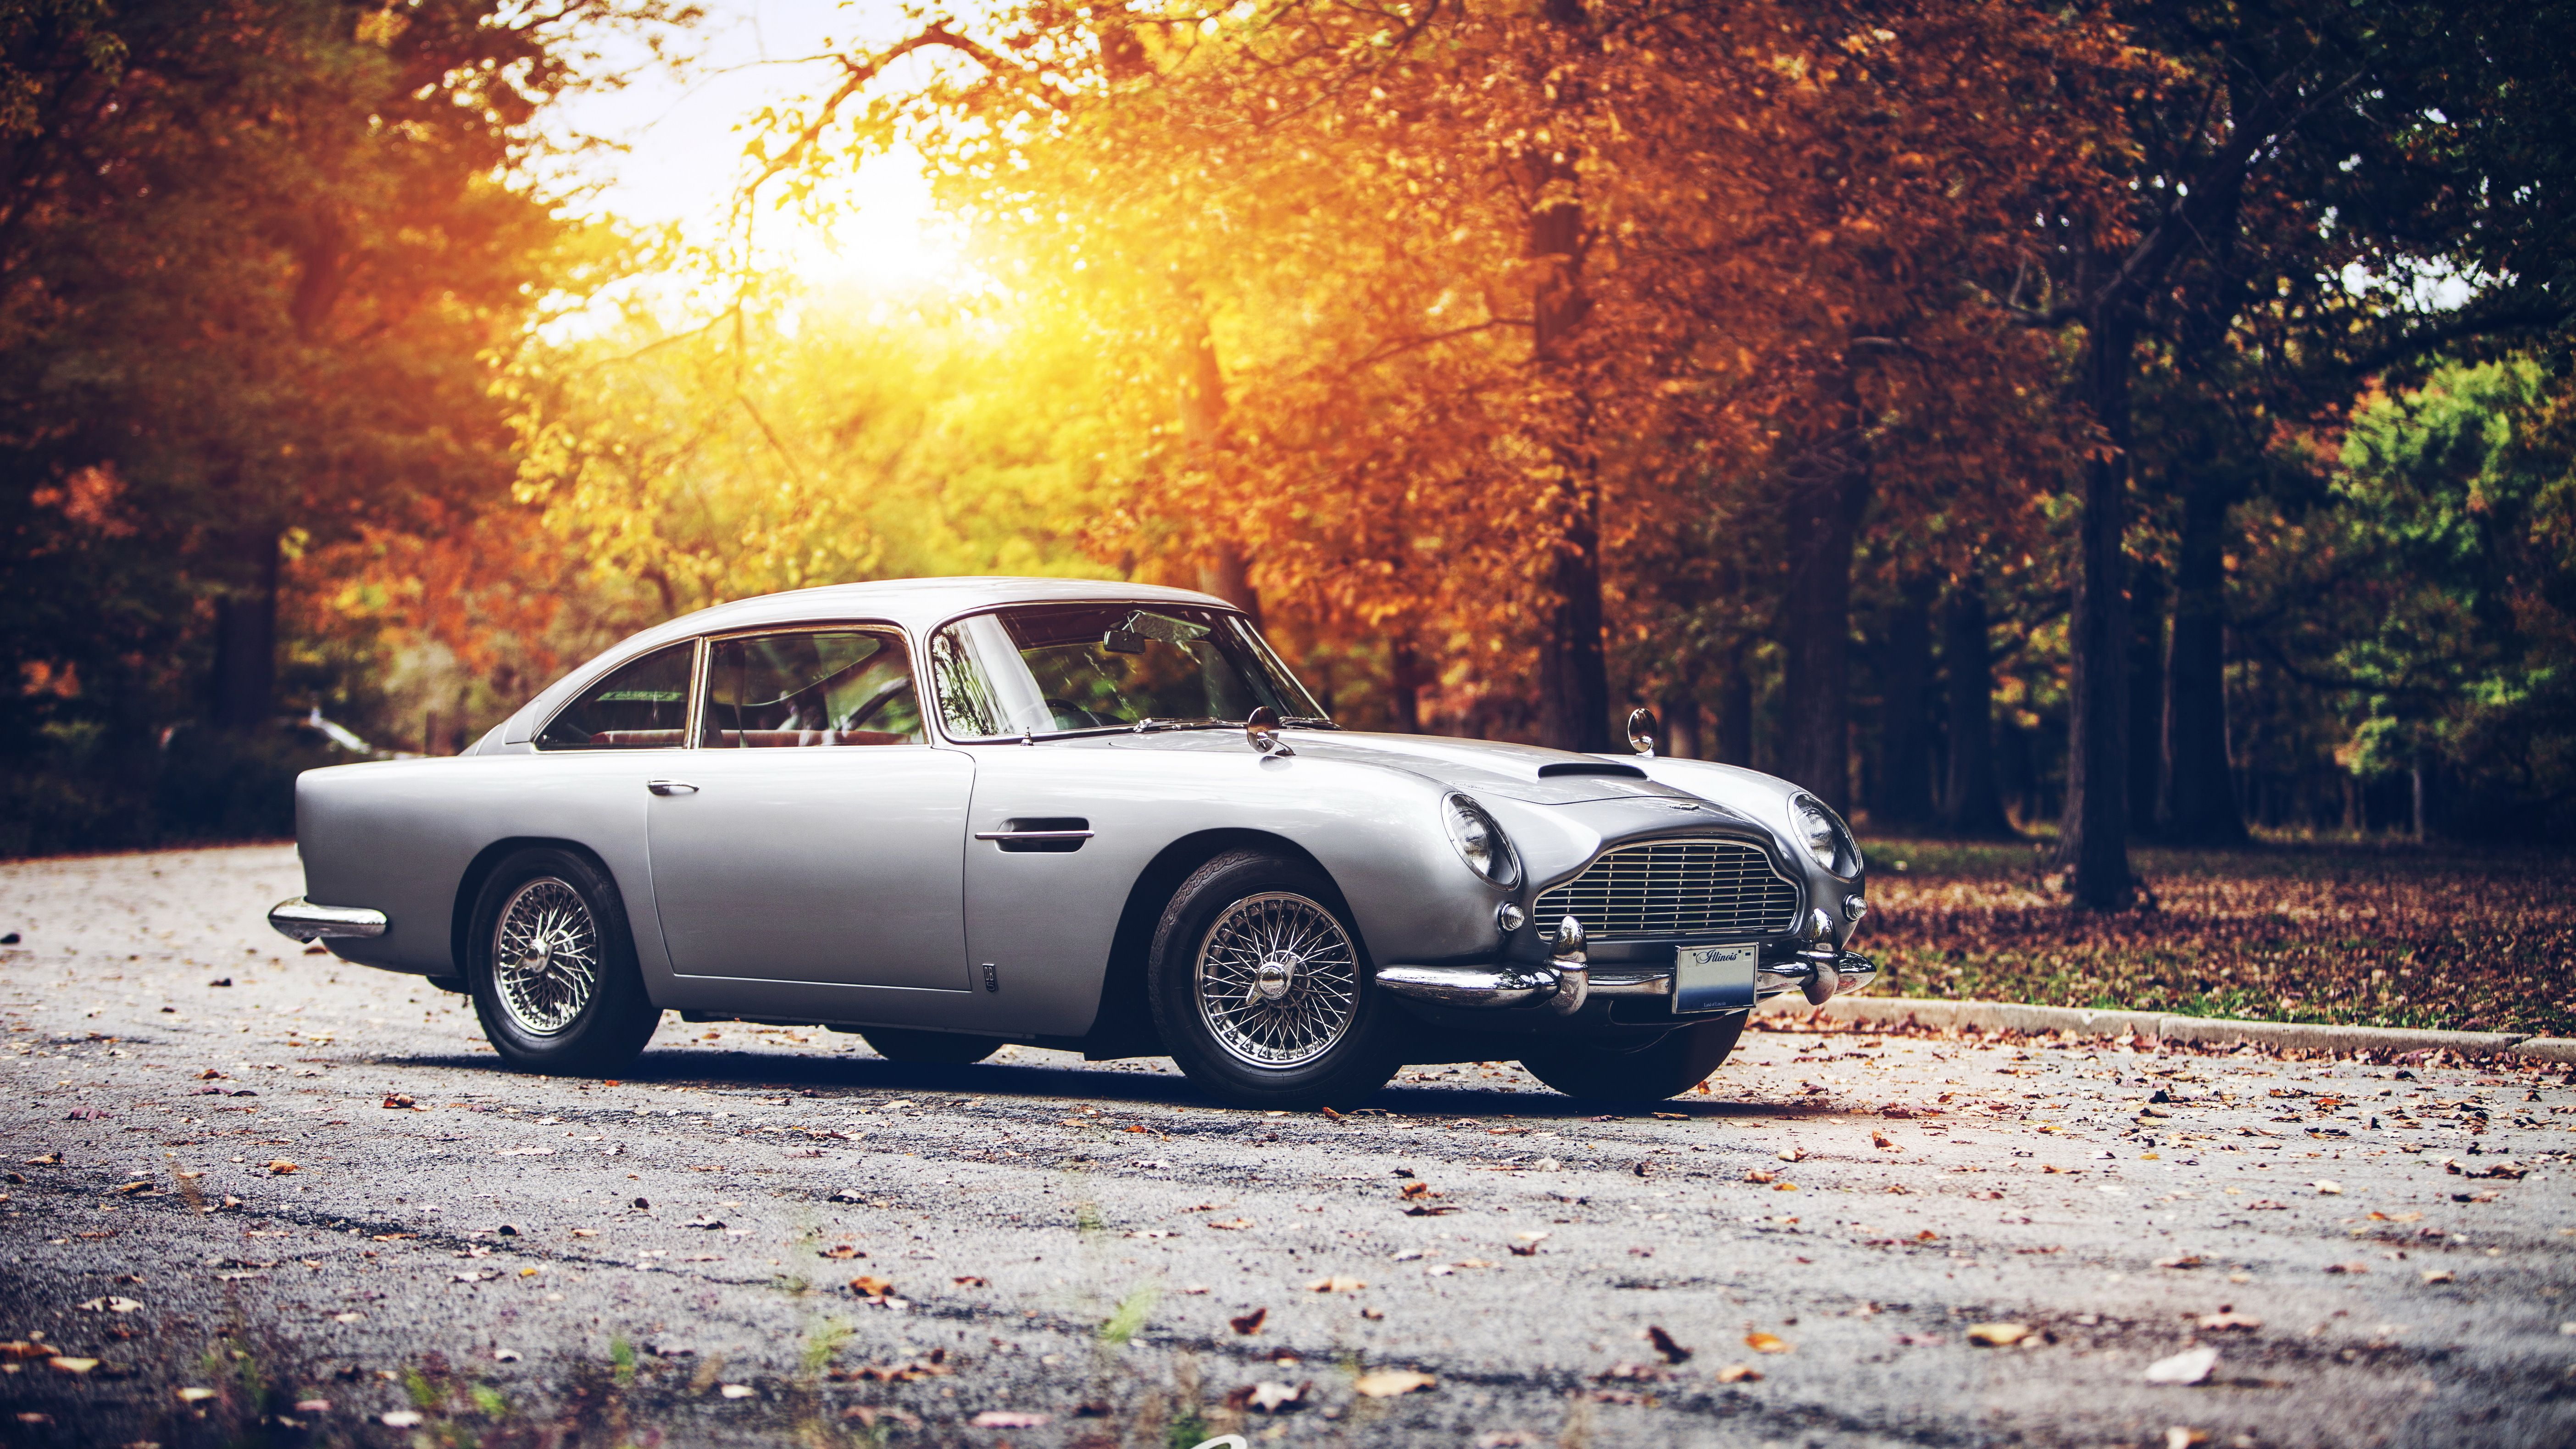 Aston martin wallpaper for android unj cars voiture - Jaguar wallpaper for android ...